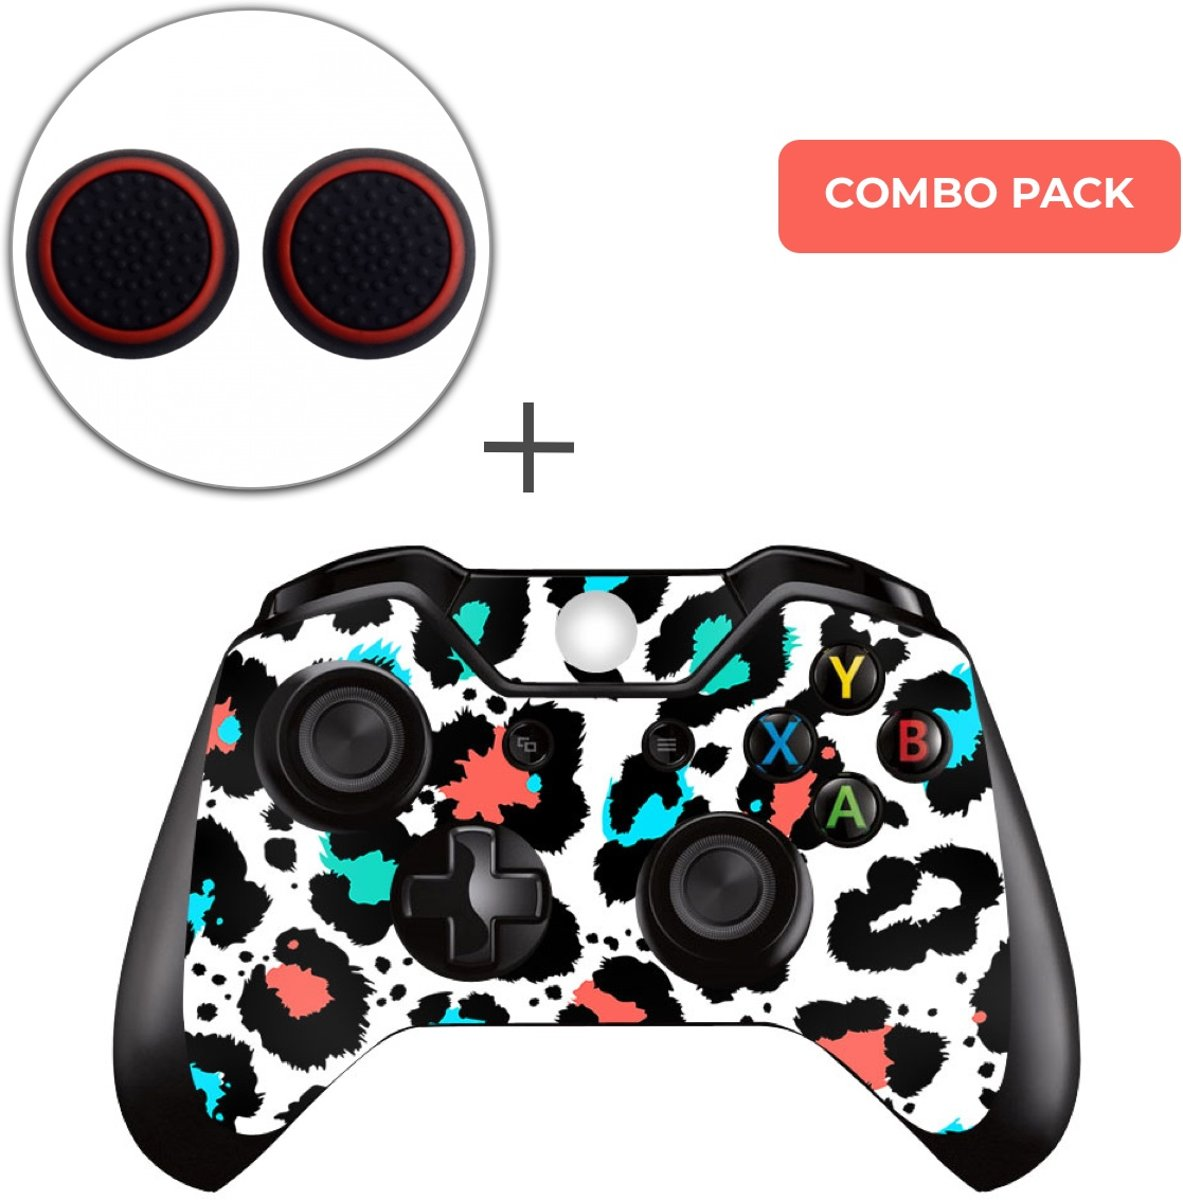 Luipaard Print Multi Combo Pack - Xbox One Controller Skins Stickers + Thumb Grips